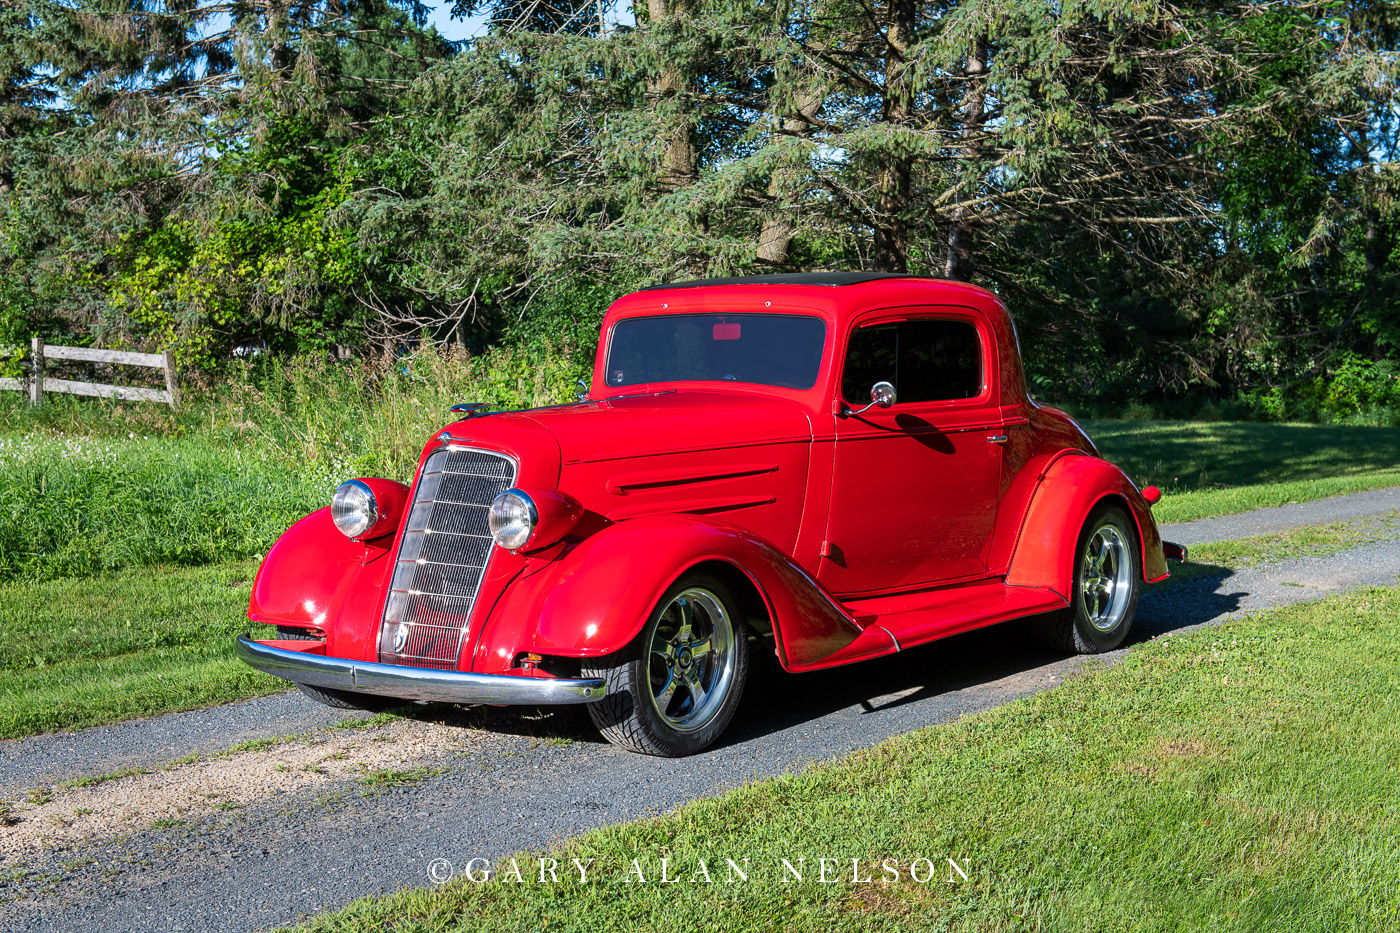 1934 Oldsmobile Rumble Seat Coupe